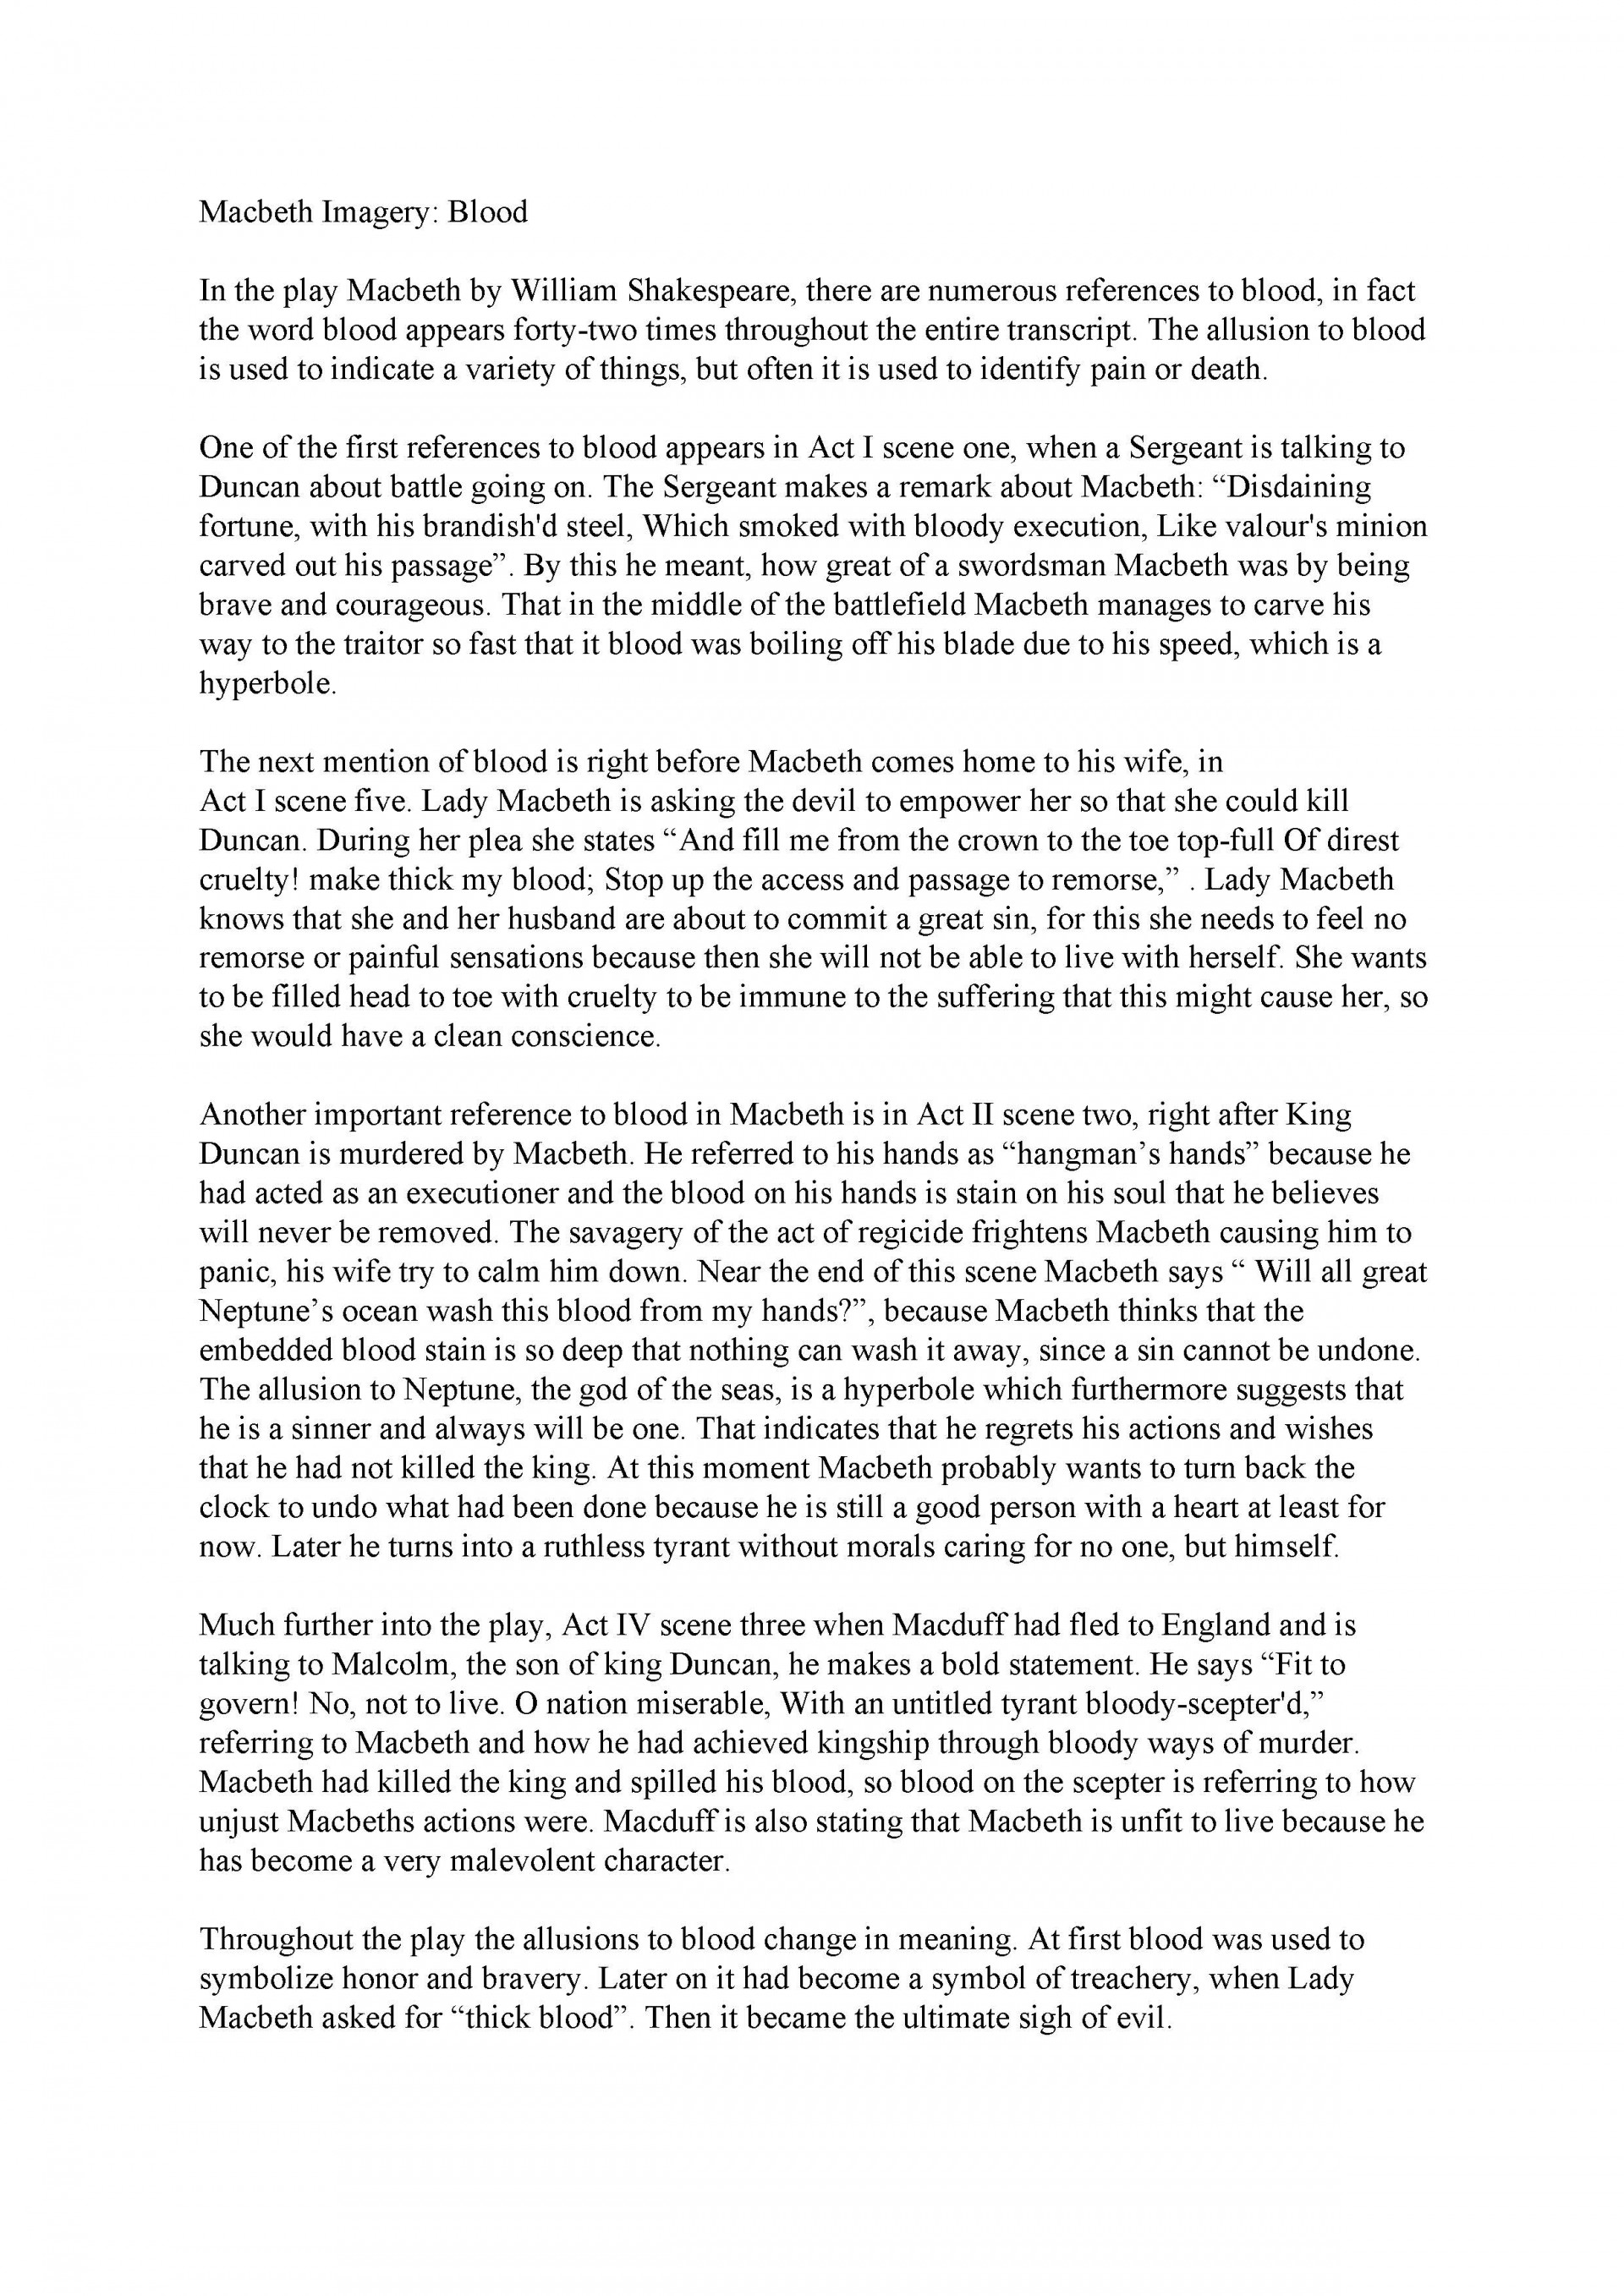 012 Macbeth Essay Sample Free Write Archaicawful Writing Prompts Examples Website To Essays 1920